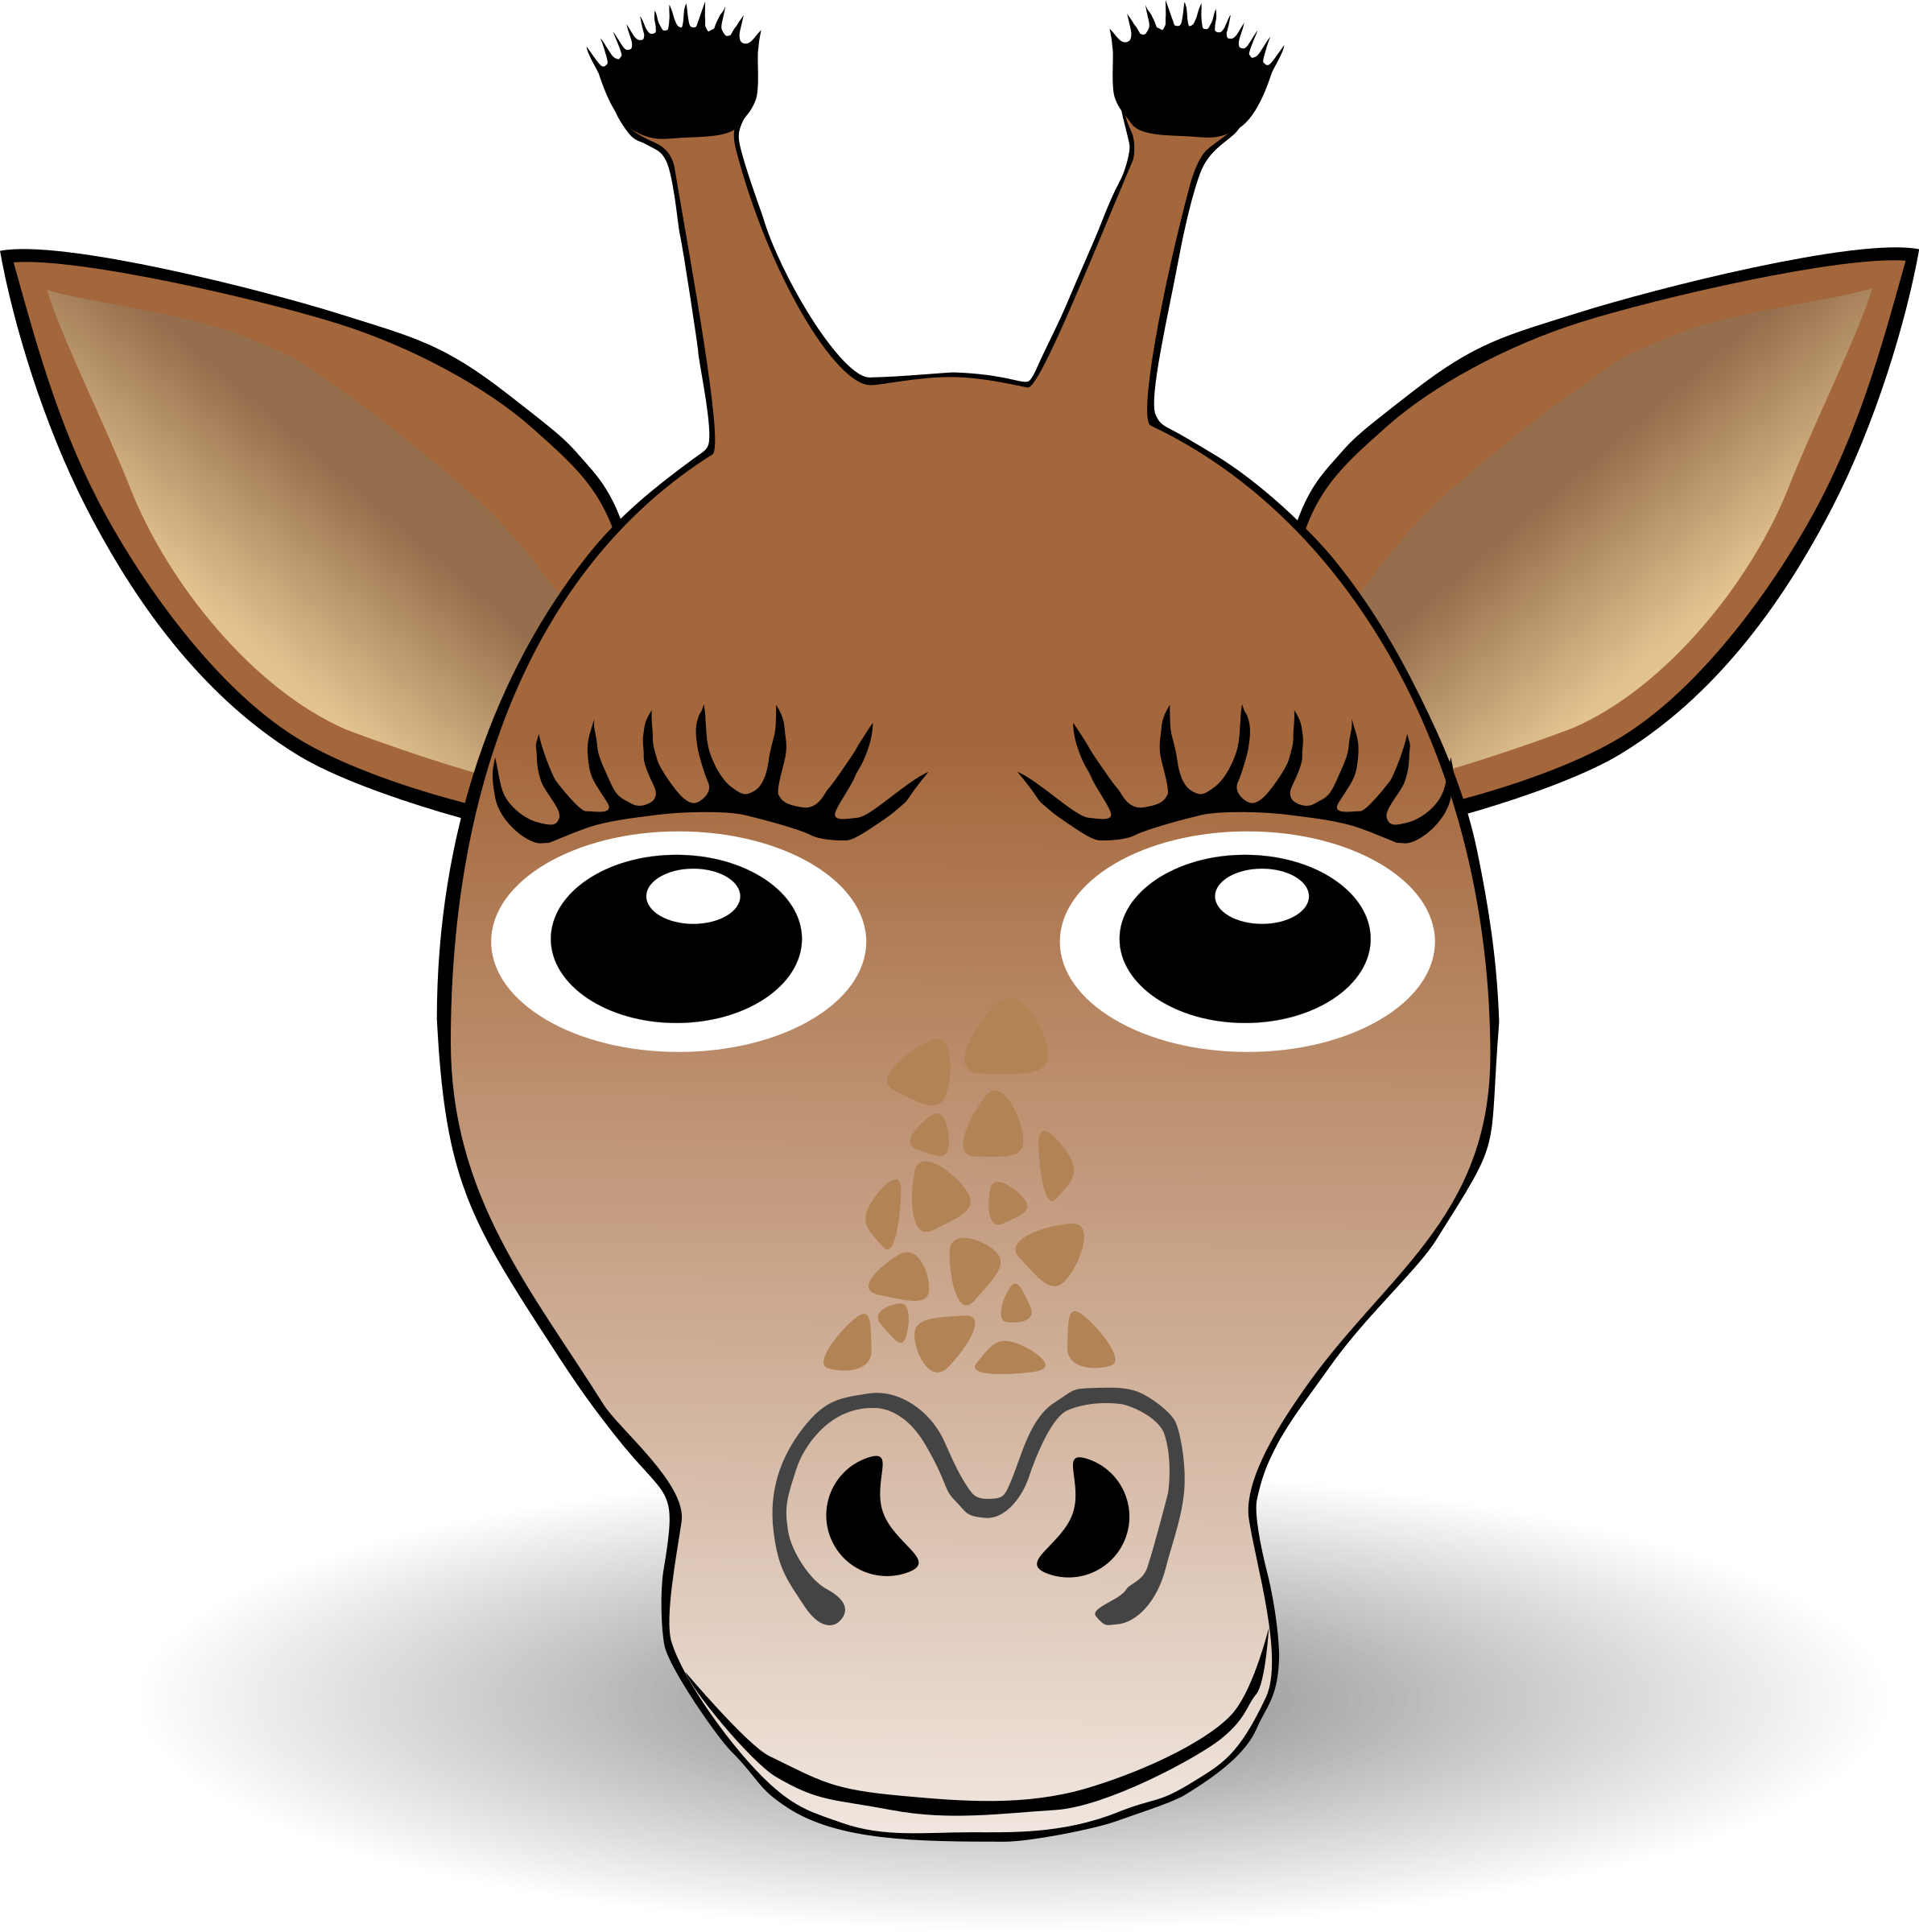 Clipart - Funny Giraffe Face Cartoon